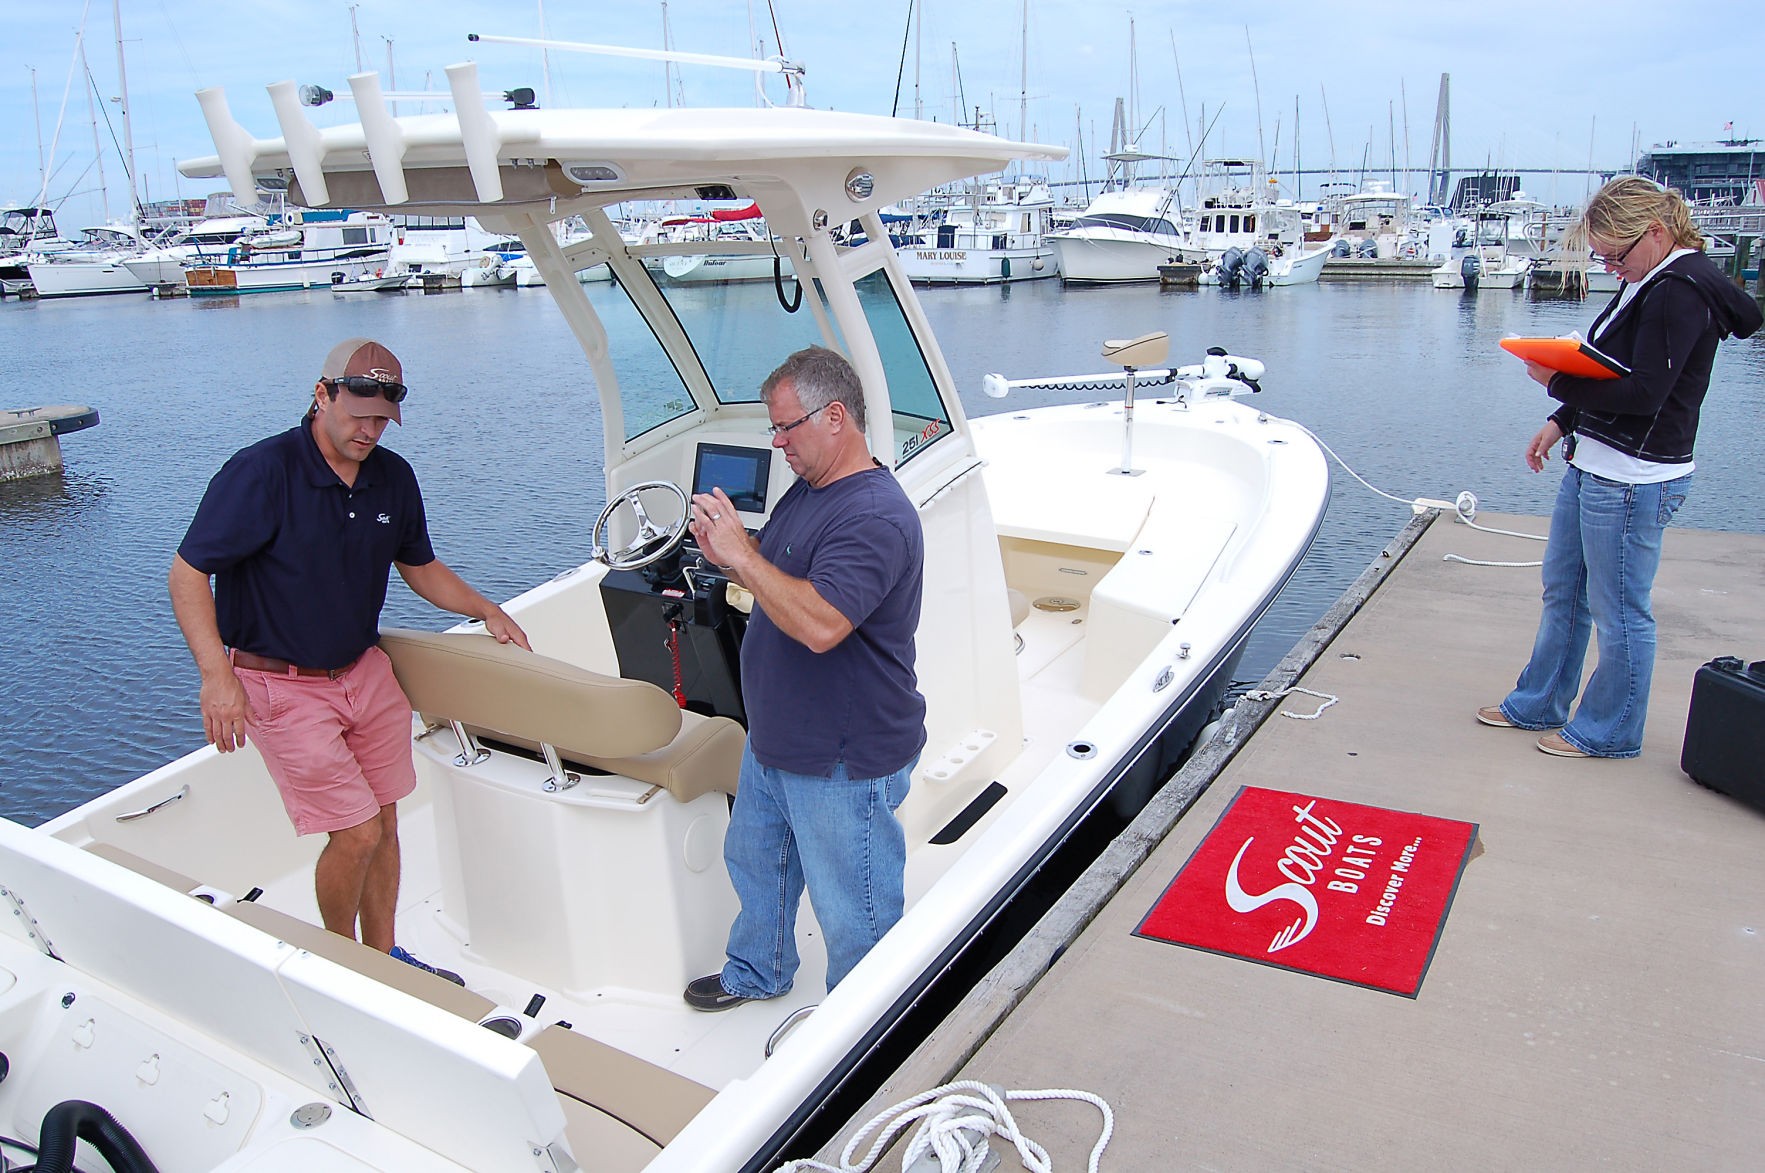 Dont Scout Text Summerville Mobile Boats Dating Match engage the rendering